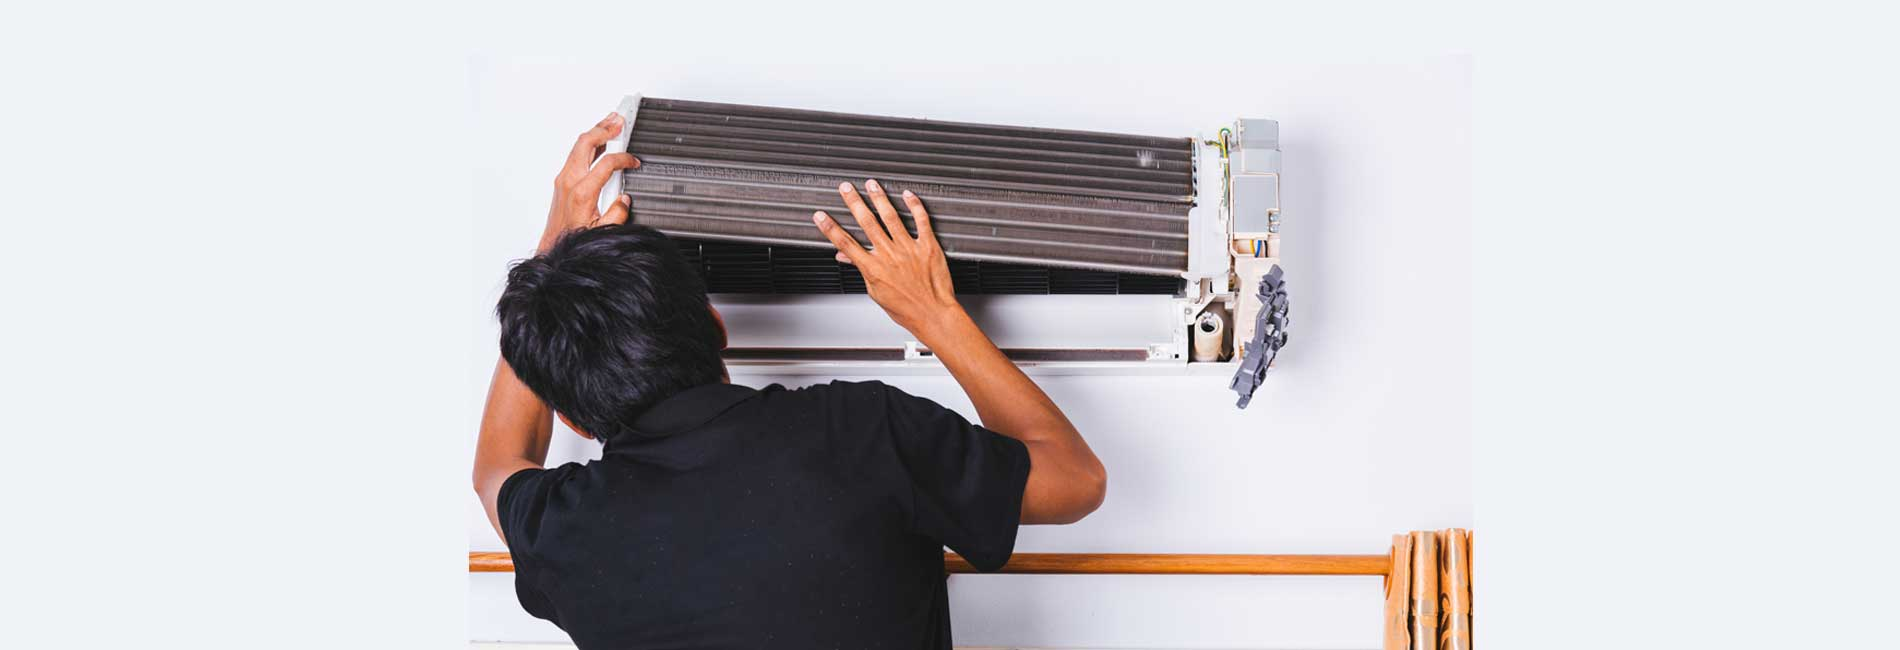 Panasonic AC Uninstallation and Installation in East Tambaram